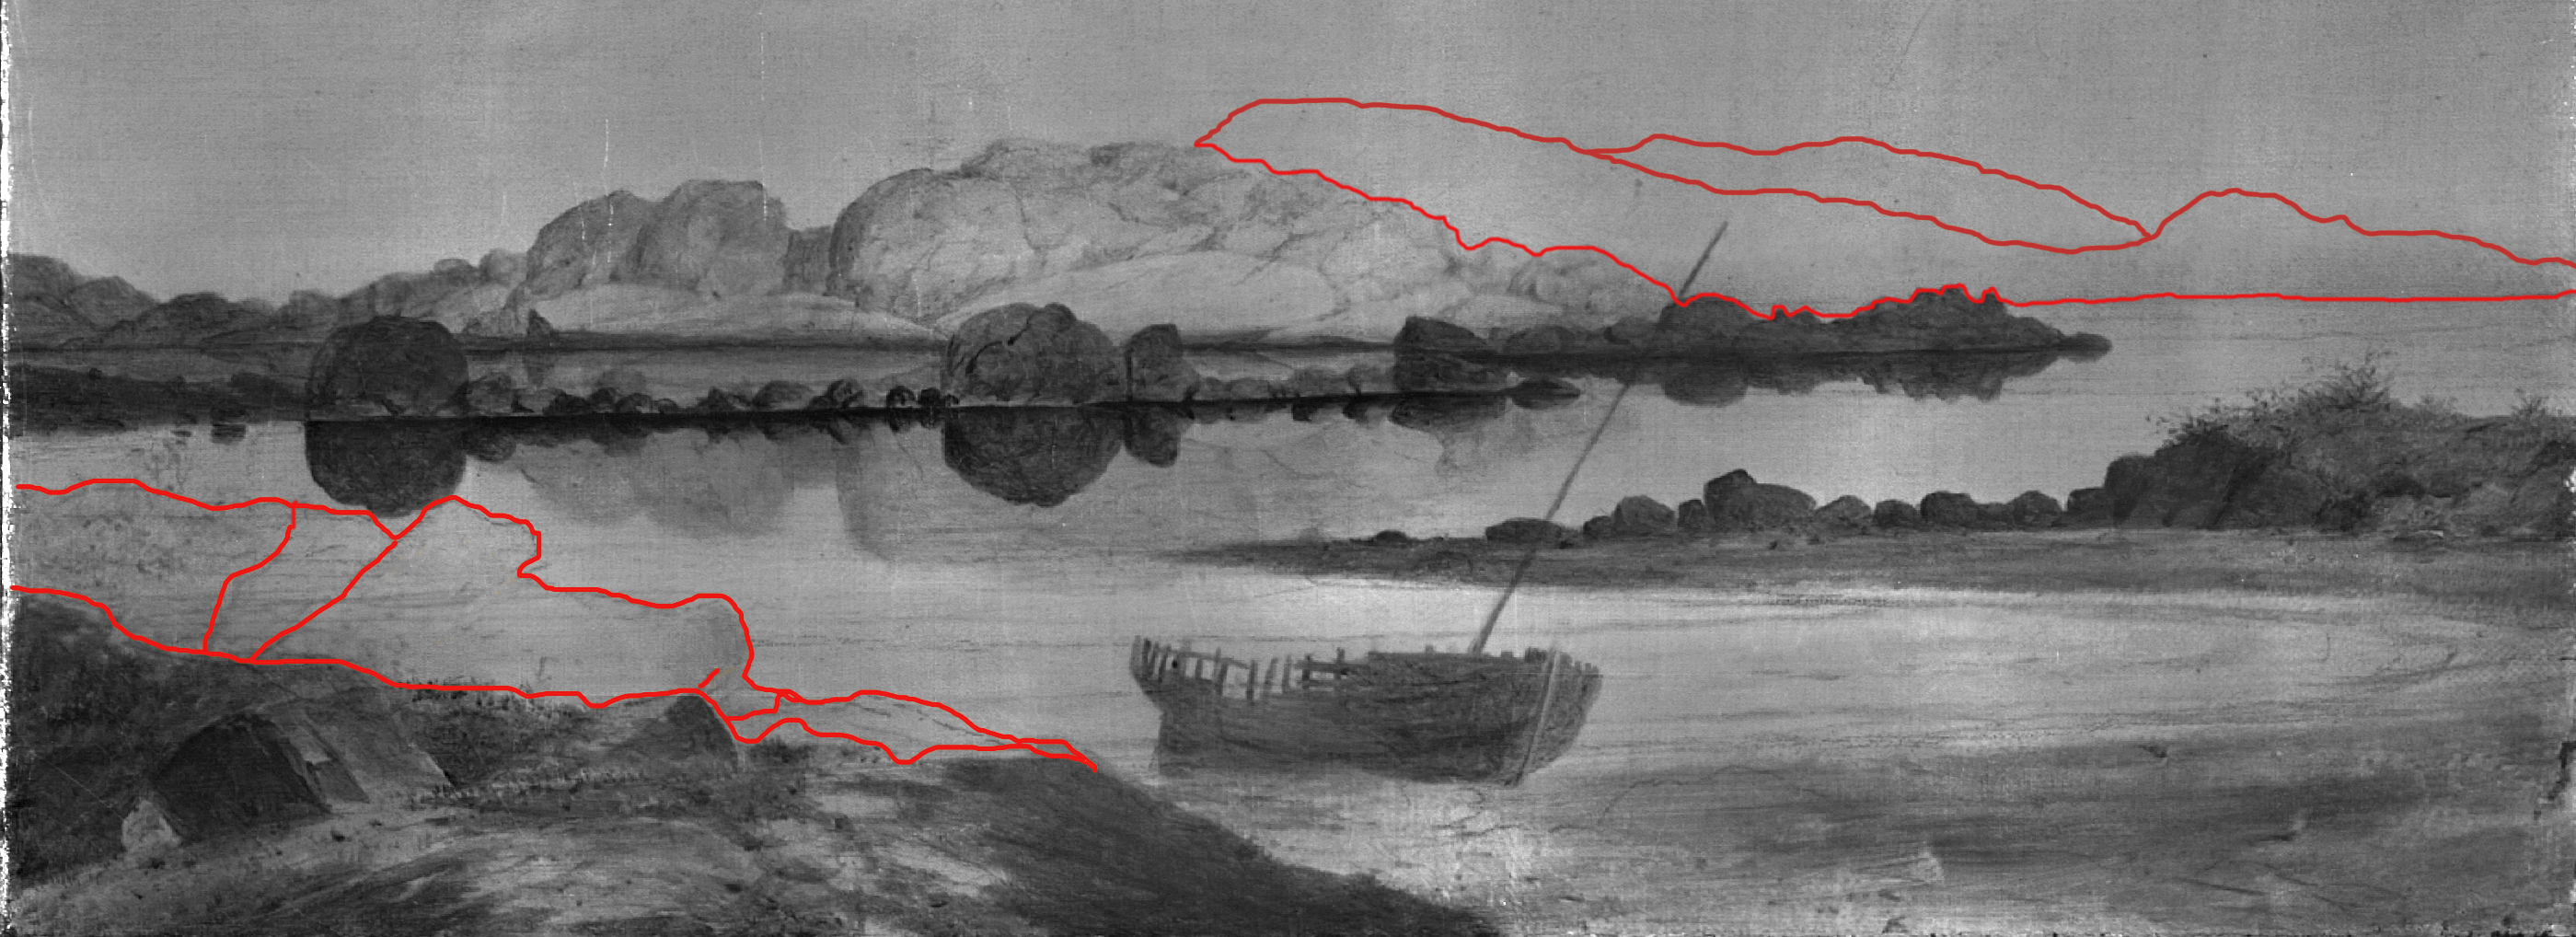 X-ray image with underdrawing of mountains and rocks highlighted.